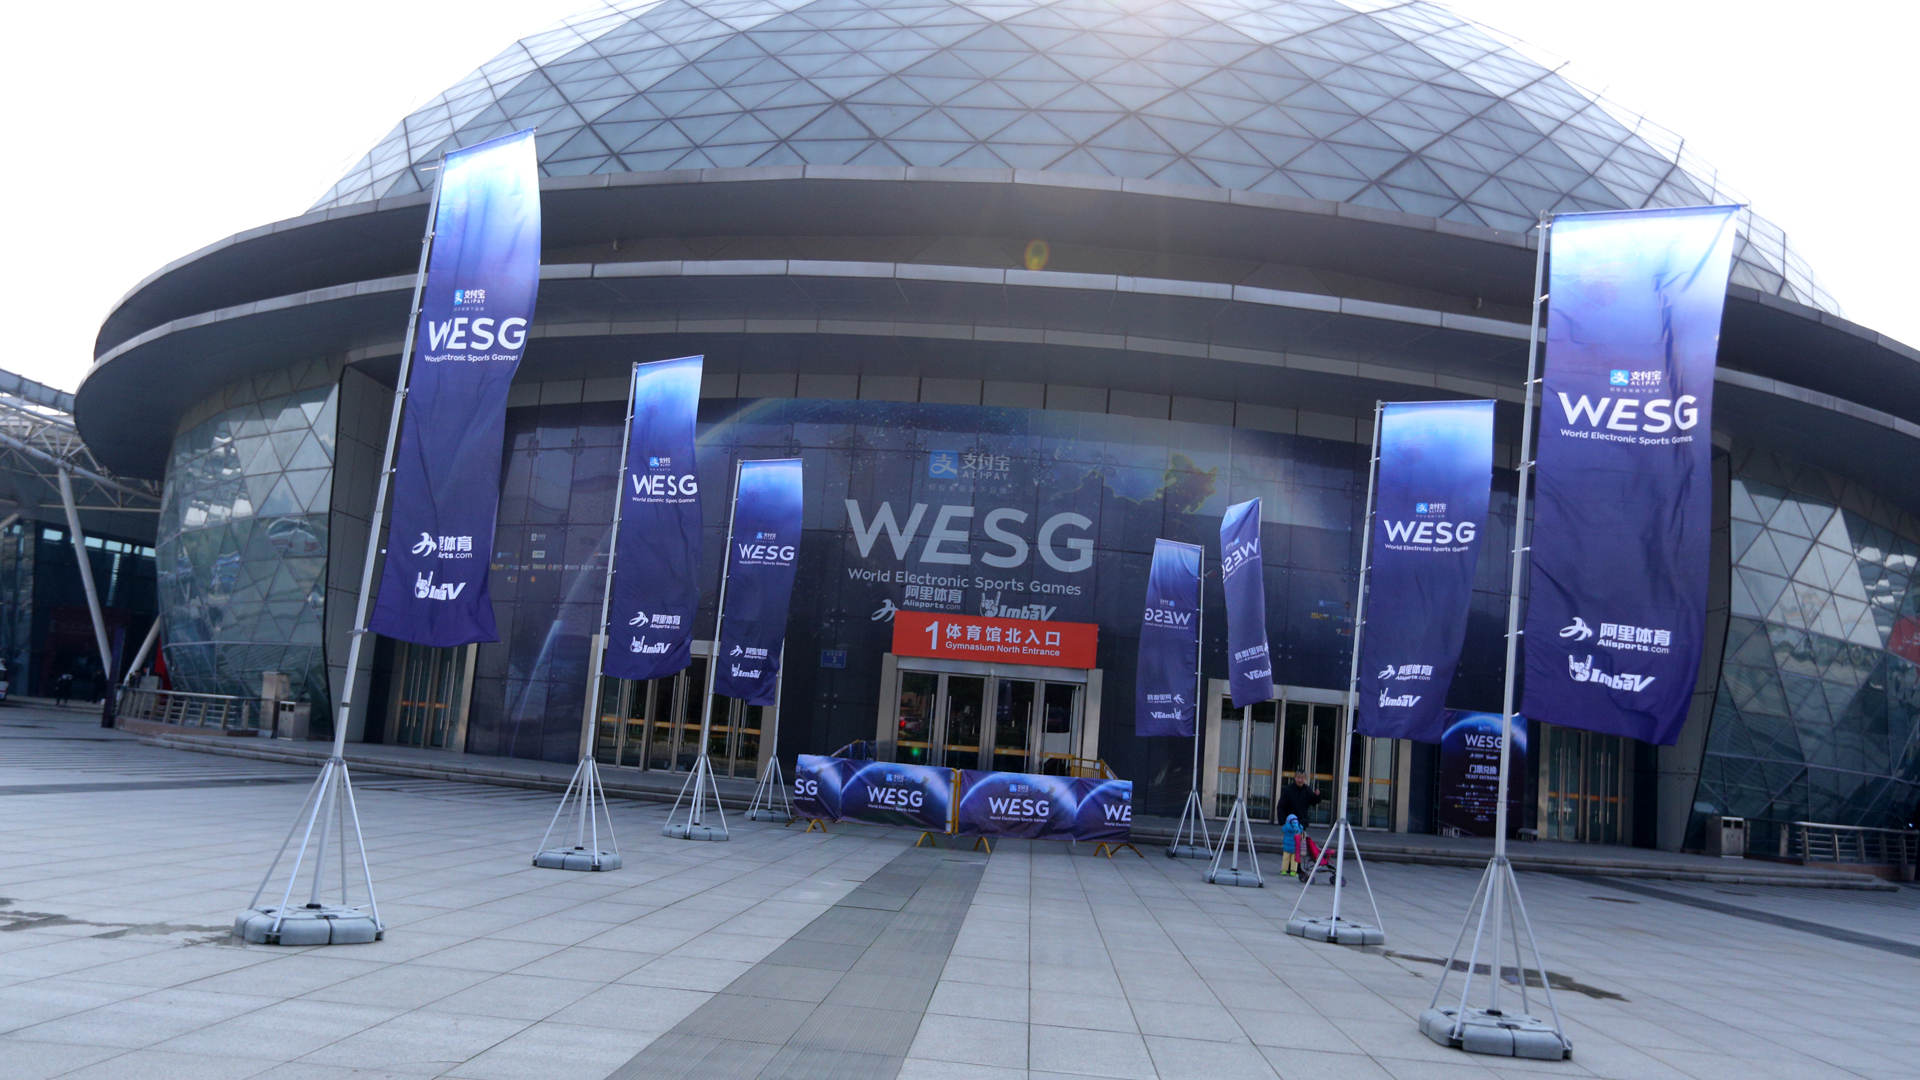 Changzhou Olympic Sports Center, WESG Grand Final presented by Alipay